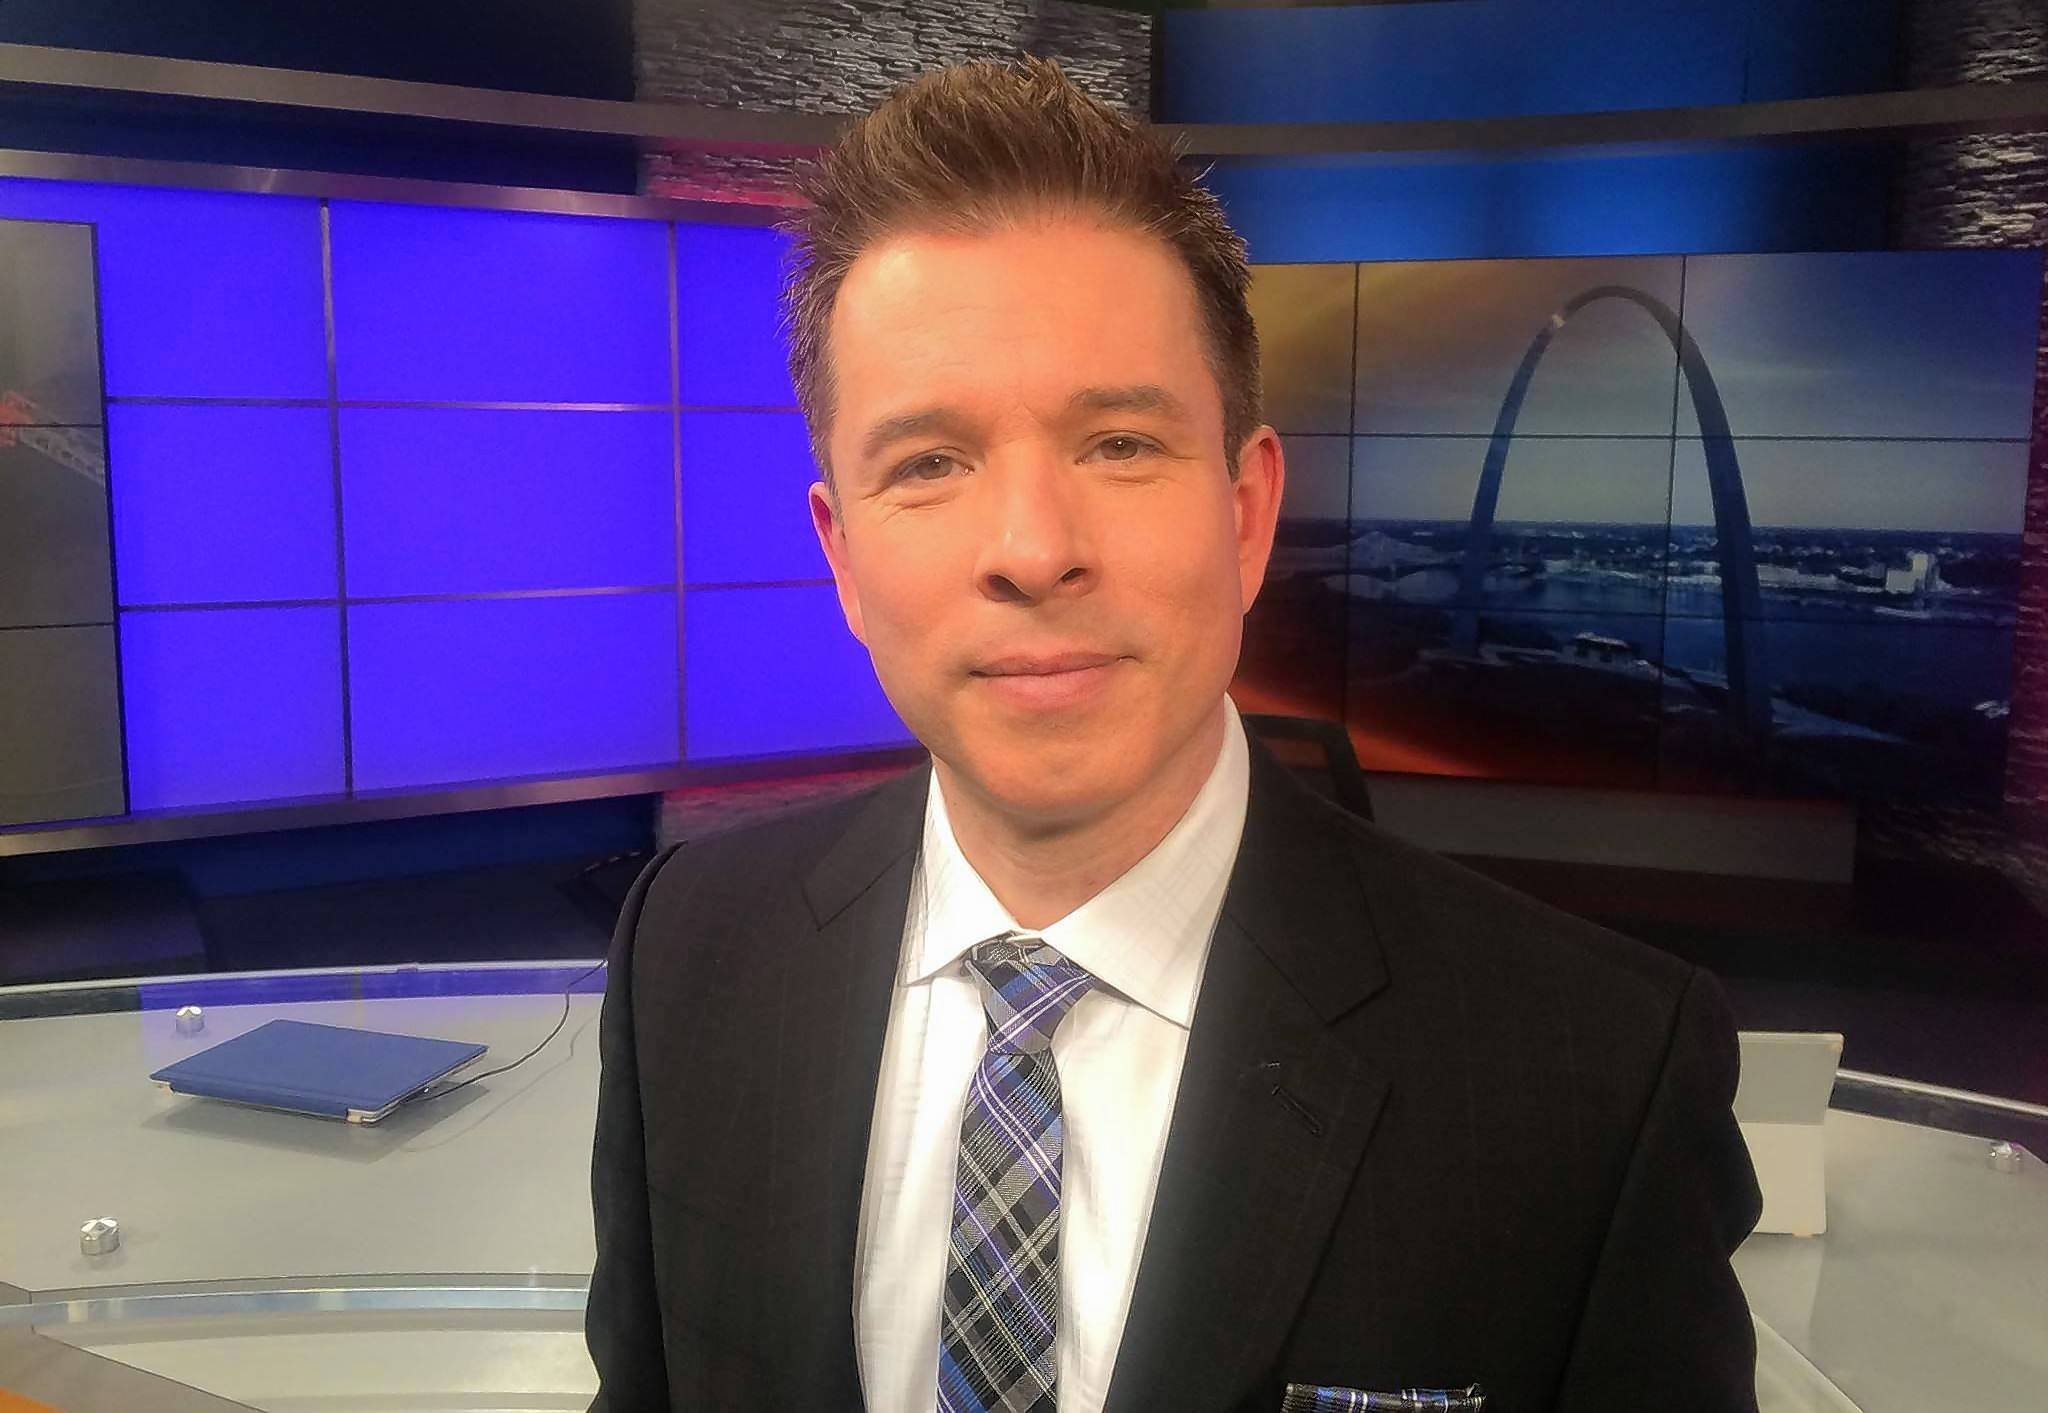 Rafer Weigel is set to return to Chicago as a reporter/news anchor for WFLD TV.